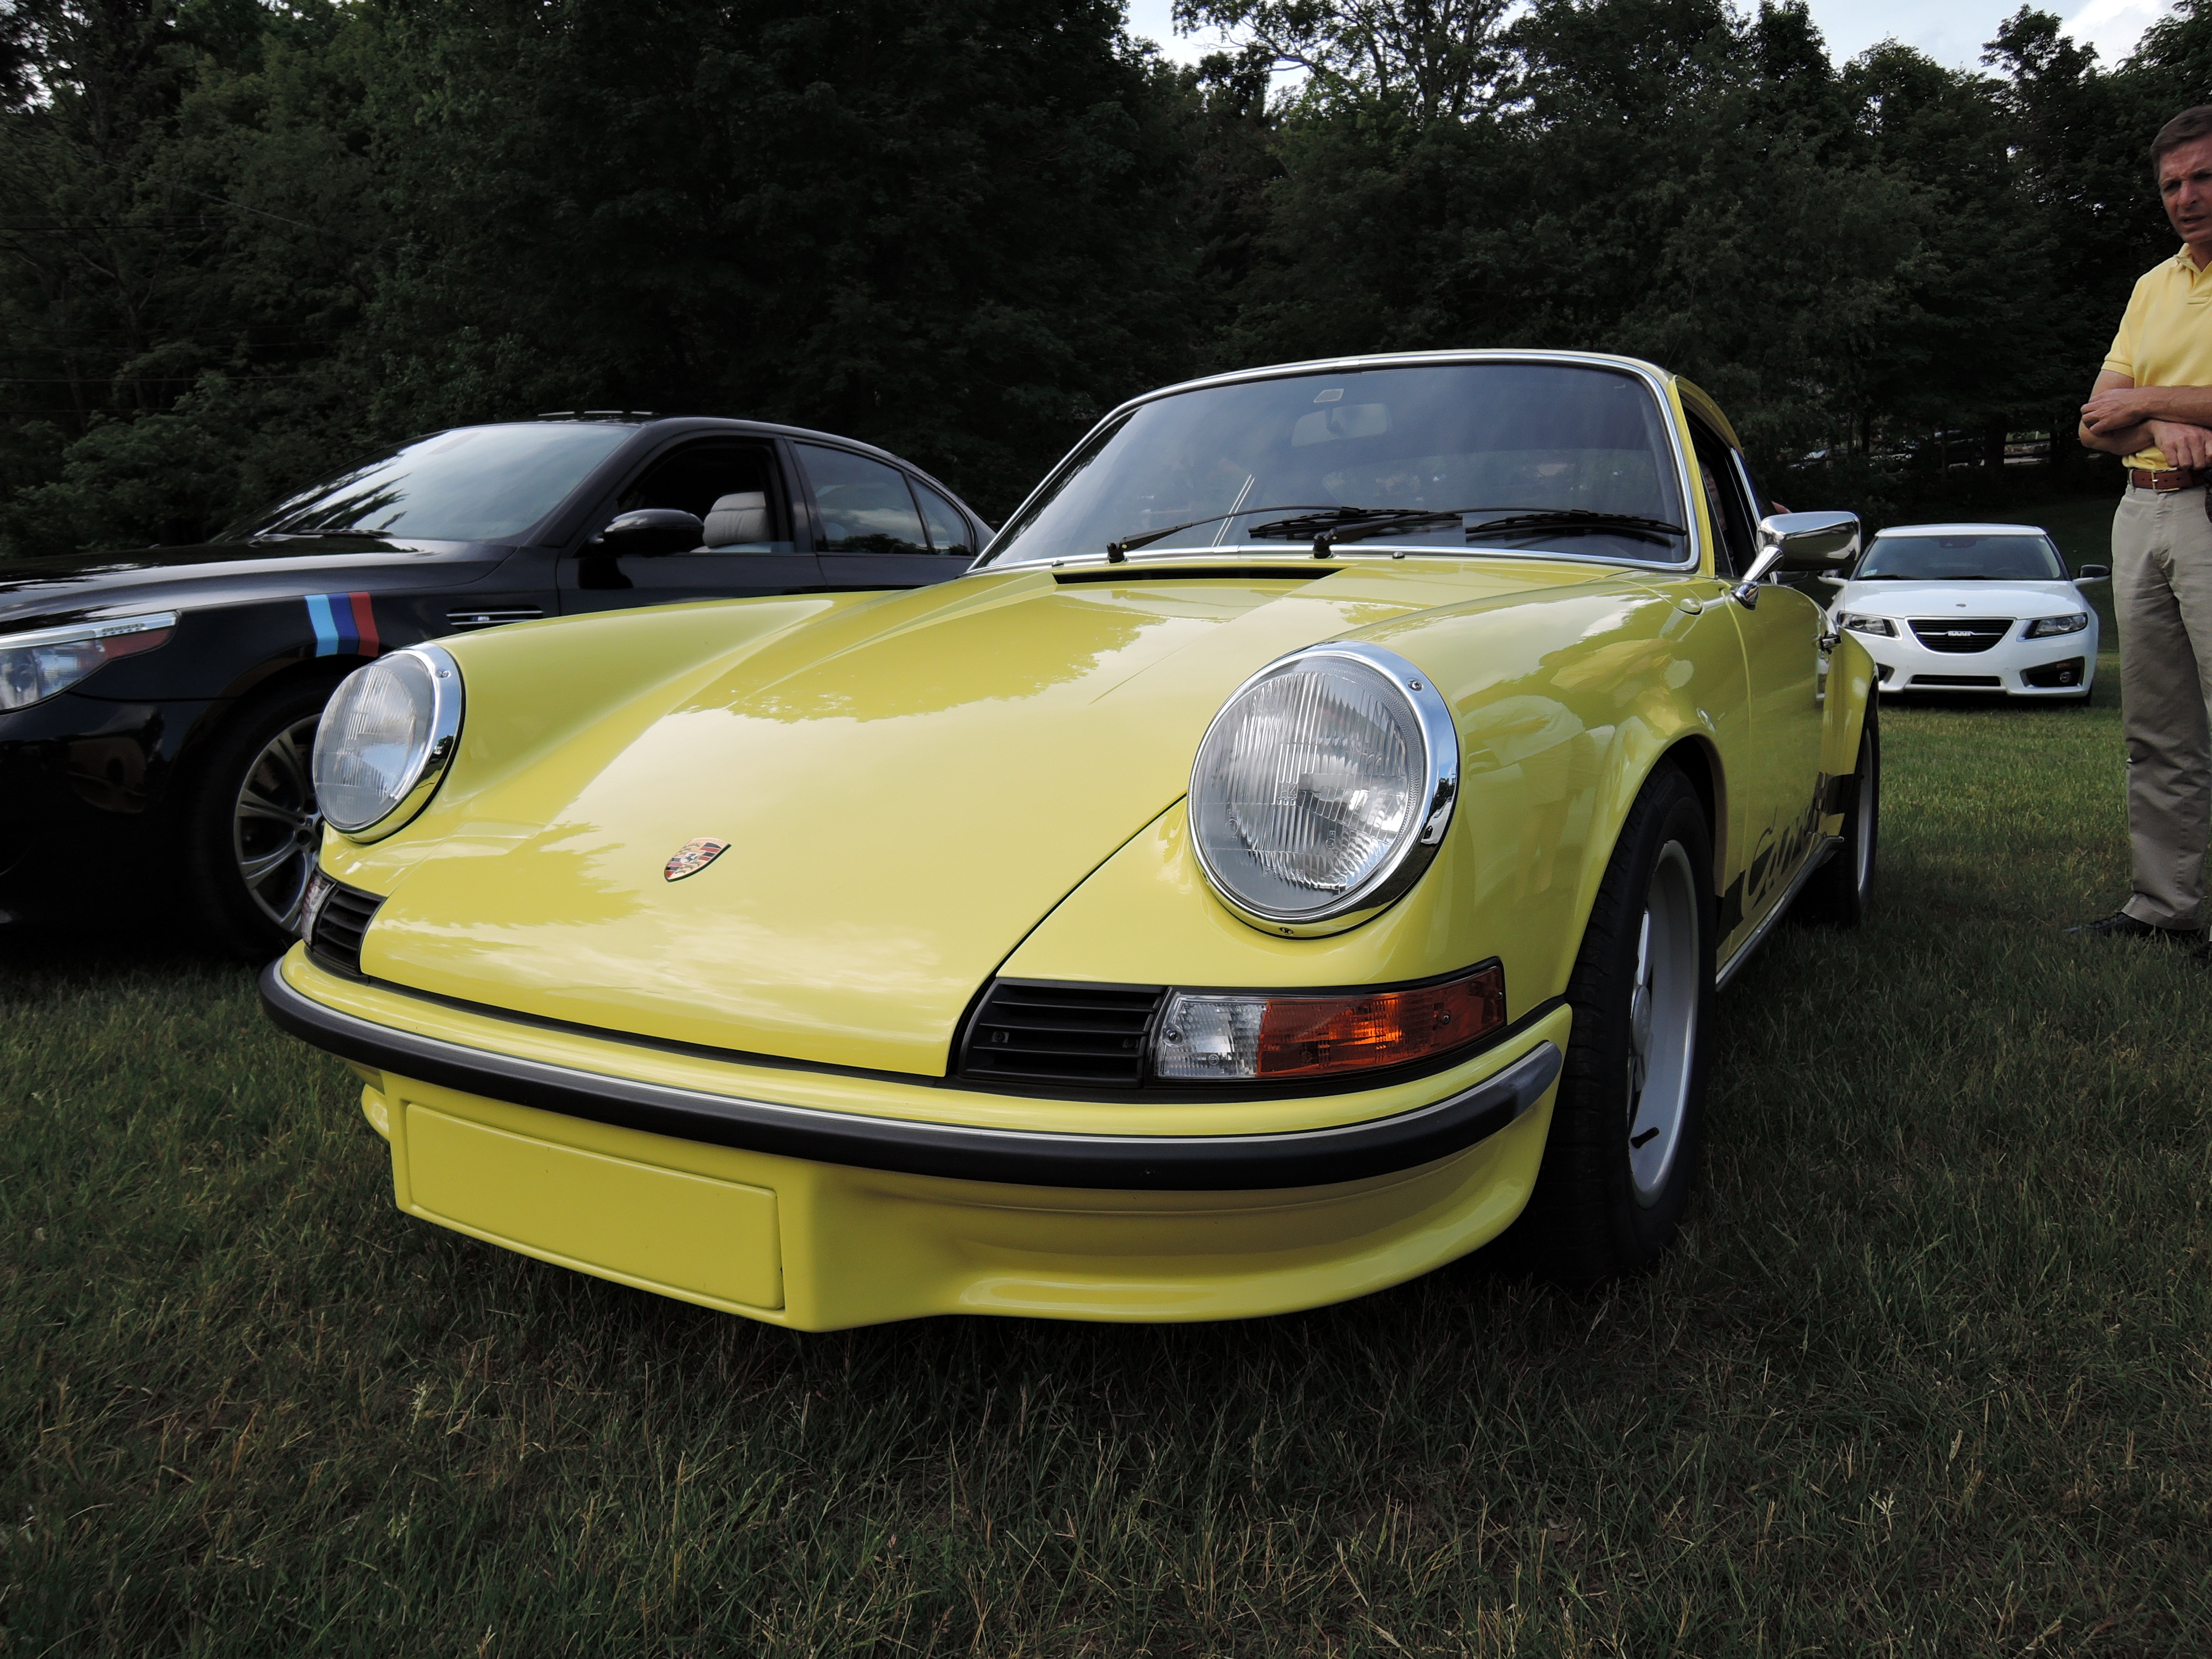 yellow porsche - cars and coffee car show at larz Anderson museum of transportation